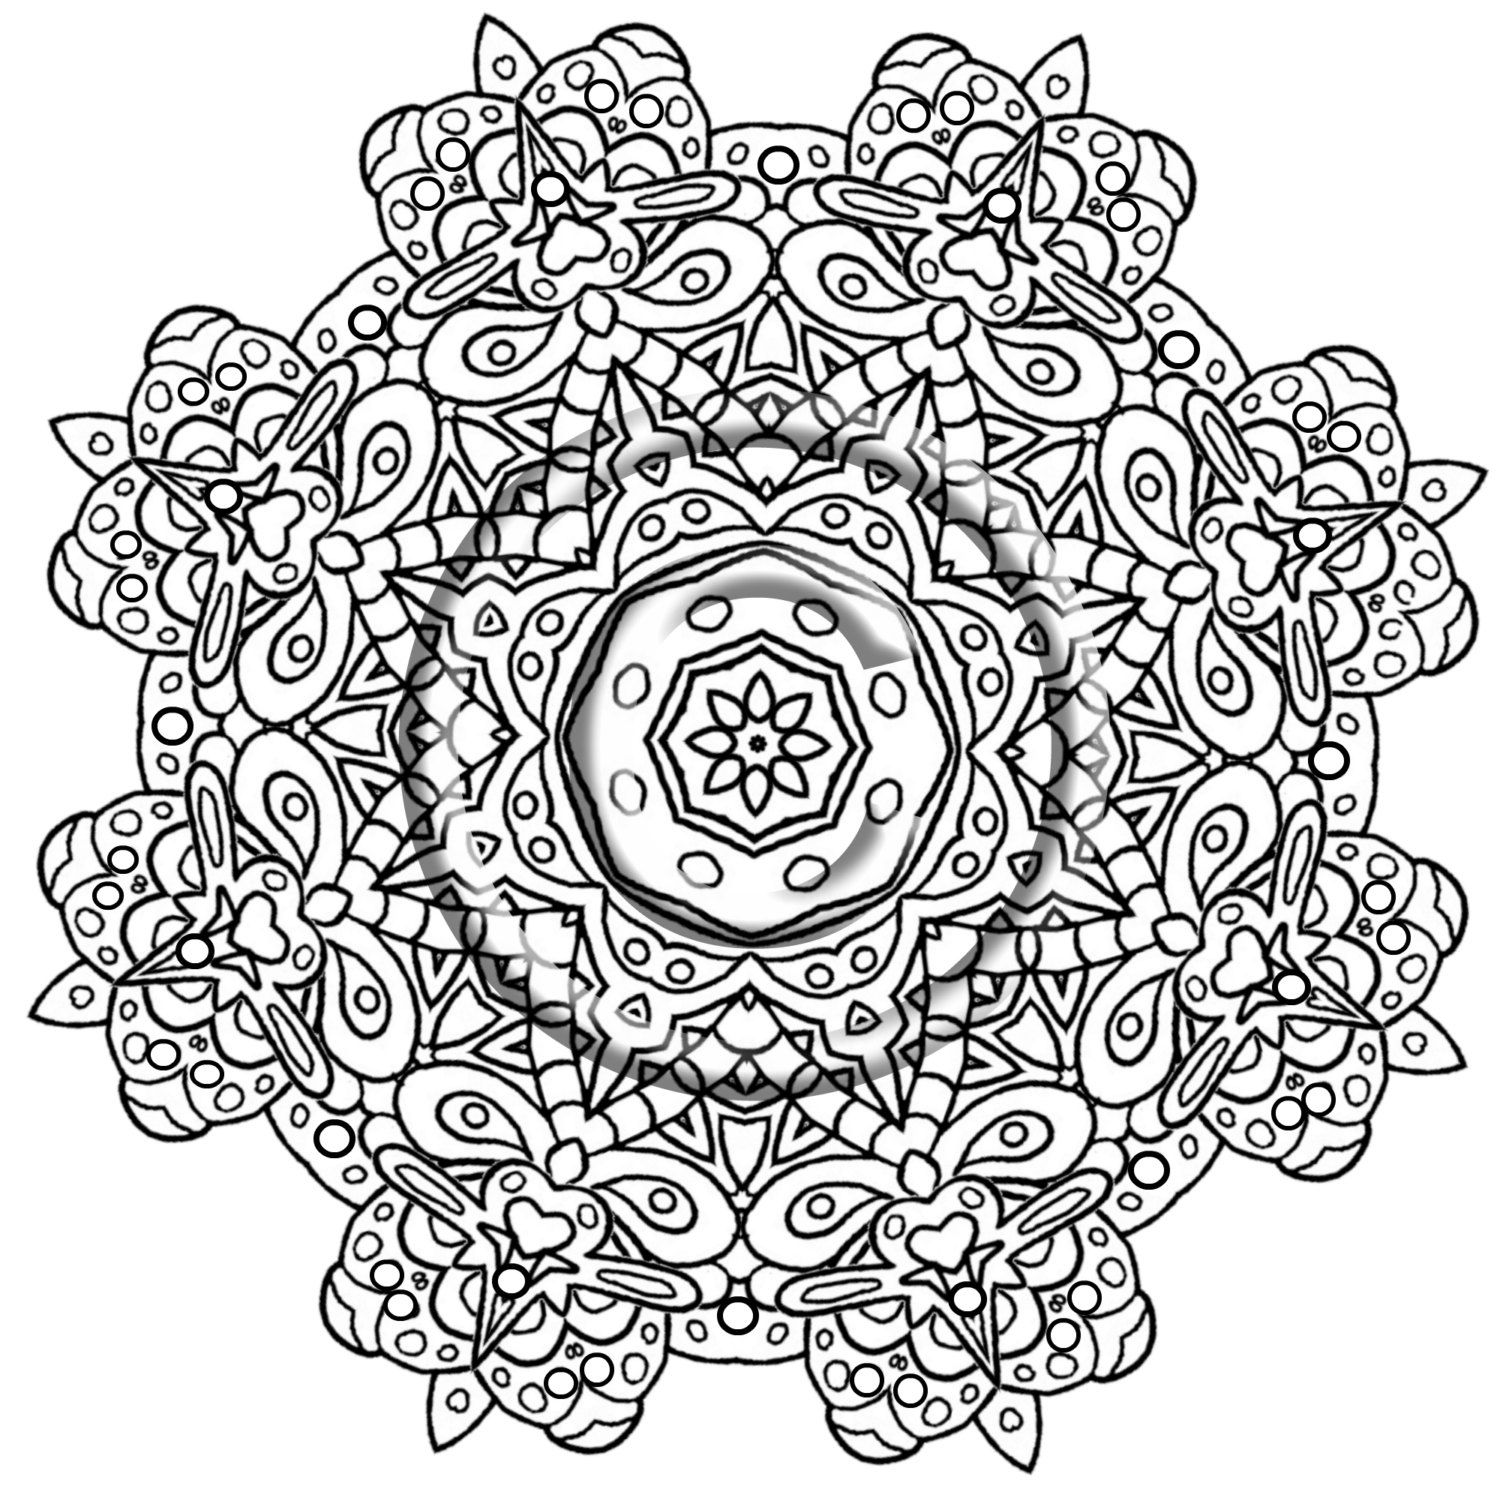 intricate coloring pages for kids intricate animal coloring pages printable coloring pages intricate coloring for pages kids